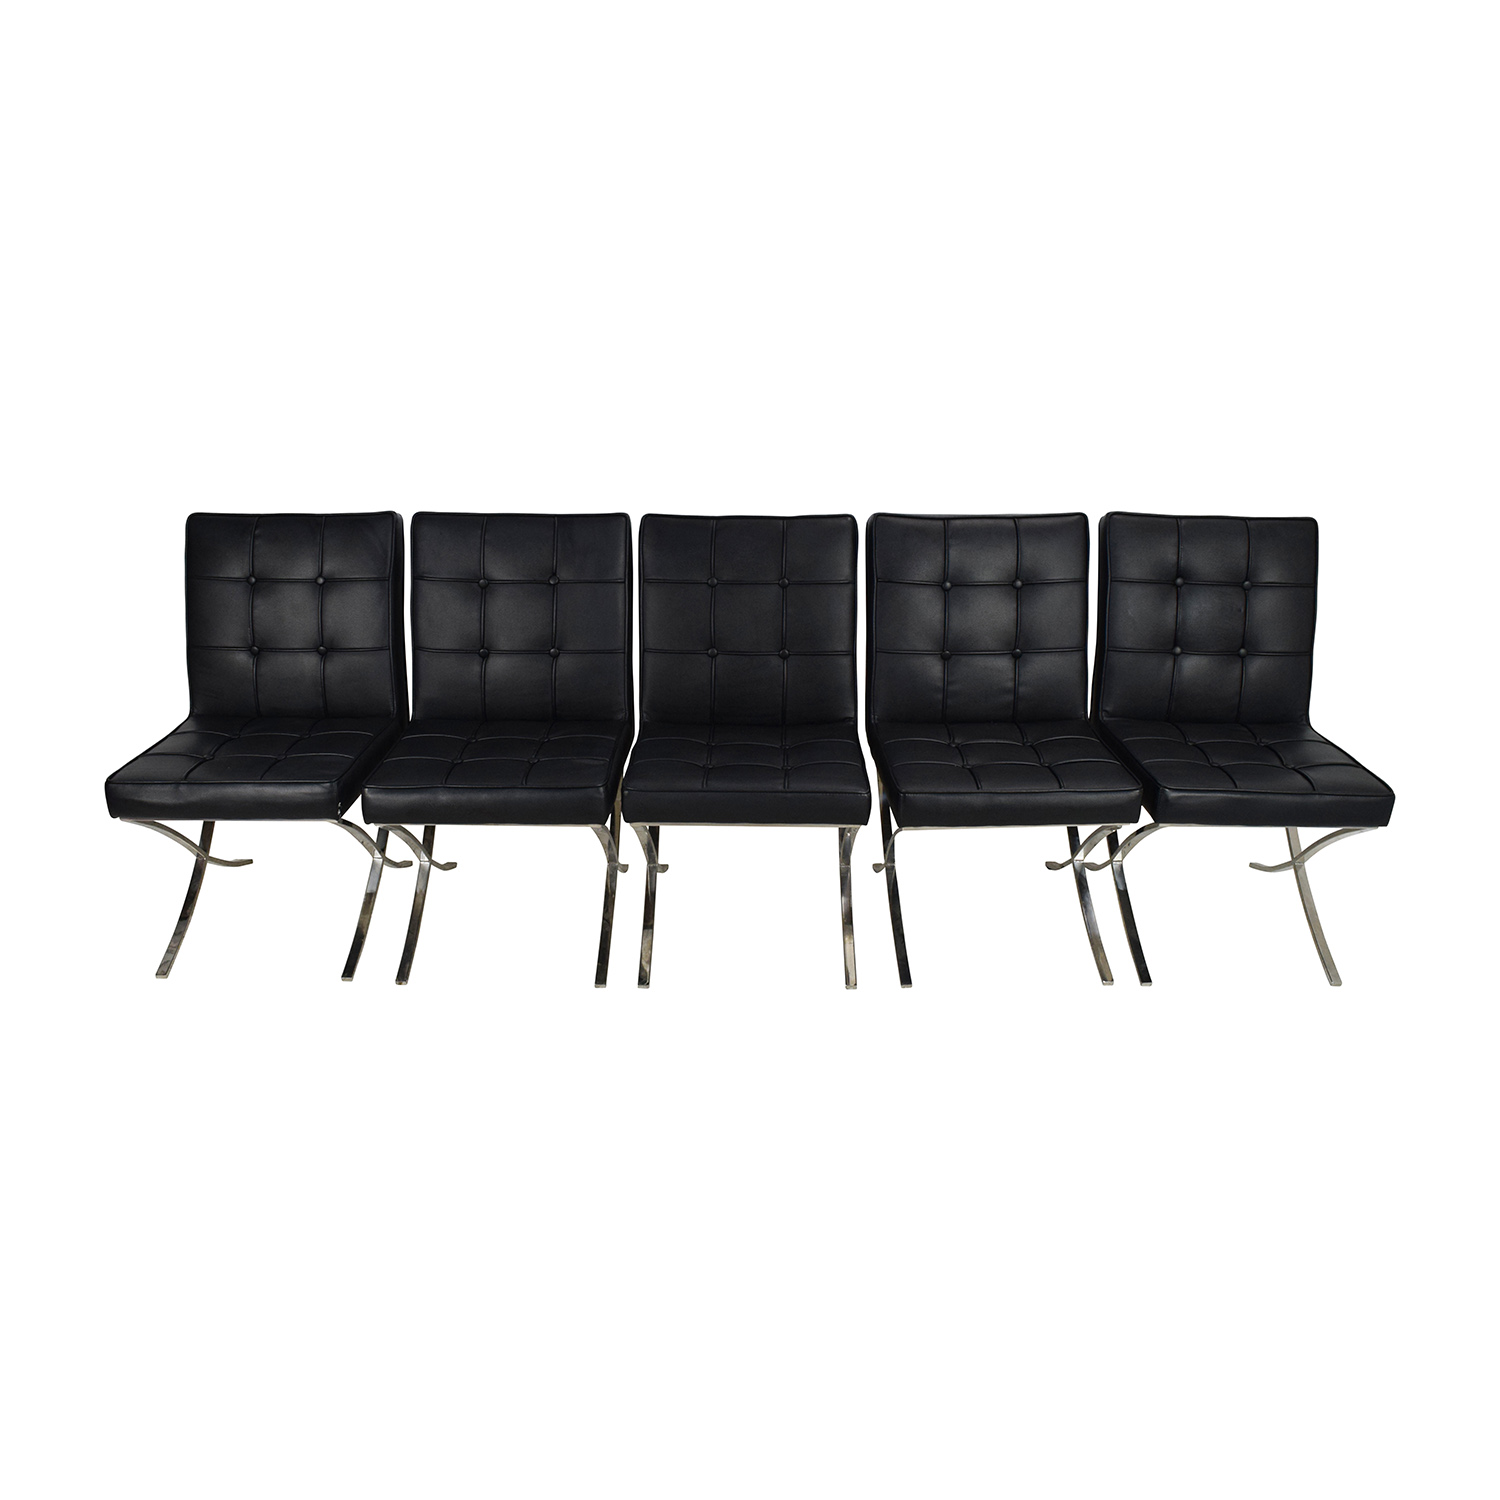 buy Black Leather Conference Room Chair Set